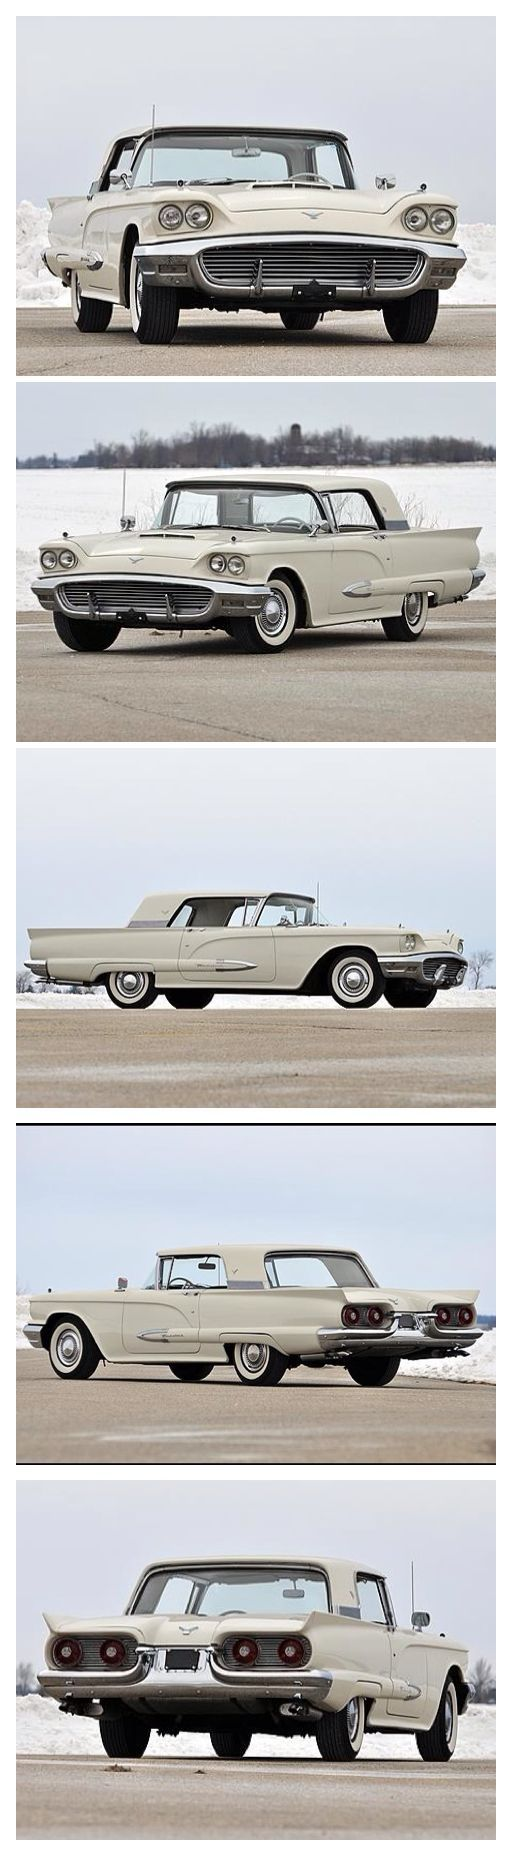 1959 Ford Thunderbird, White in Color. #Ford